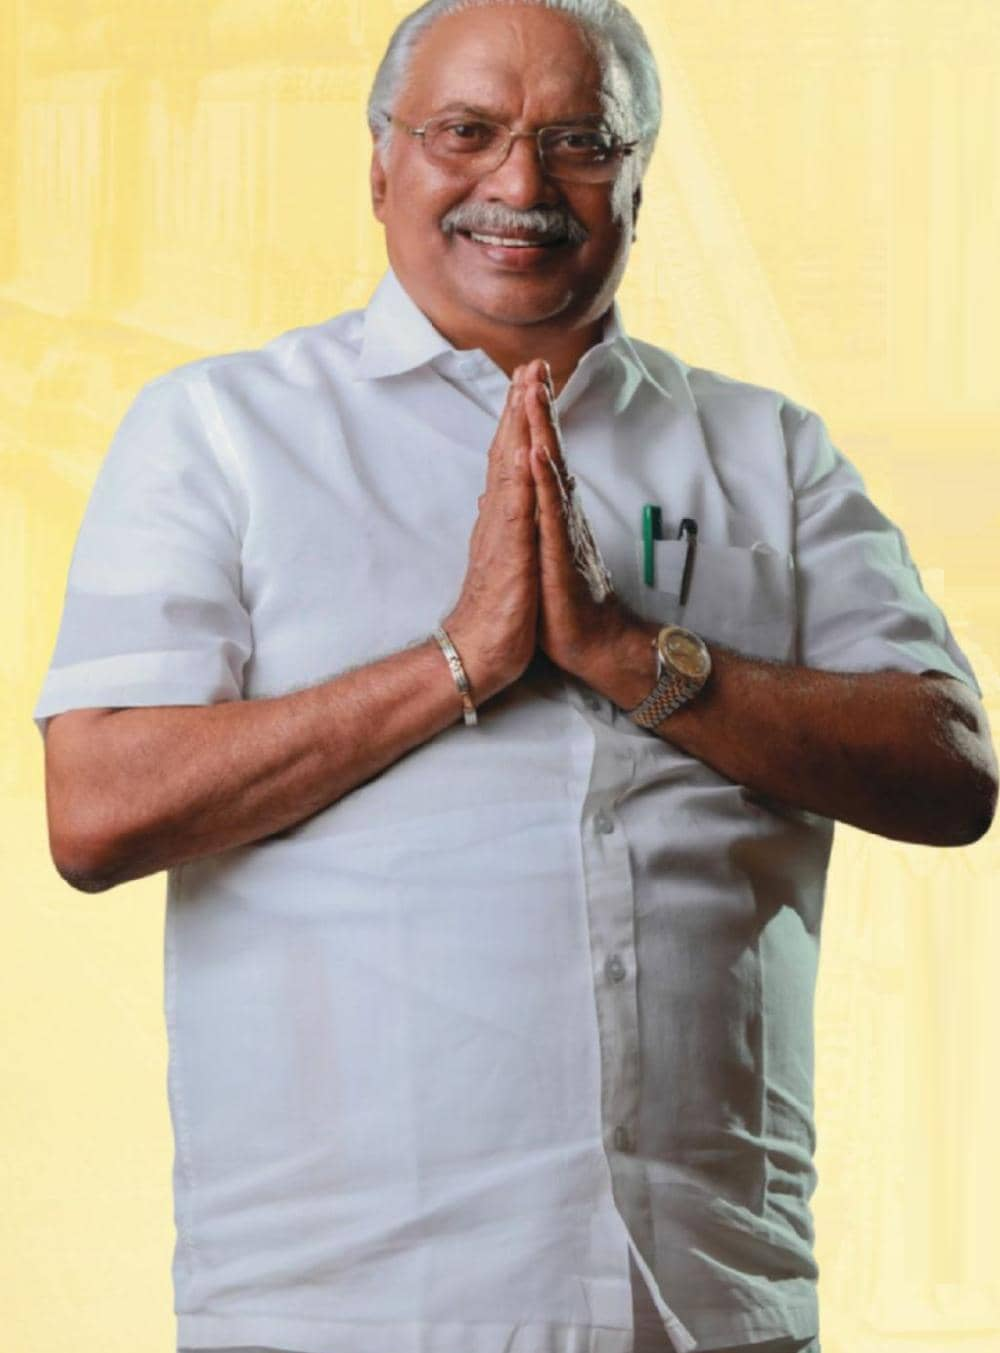 GOKULAM GOPALAN: THE SOCIALLY COMMITTED BUSINESSMAN